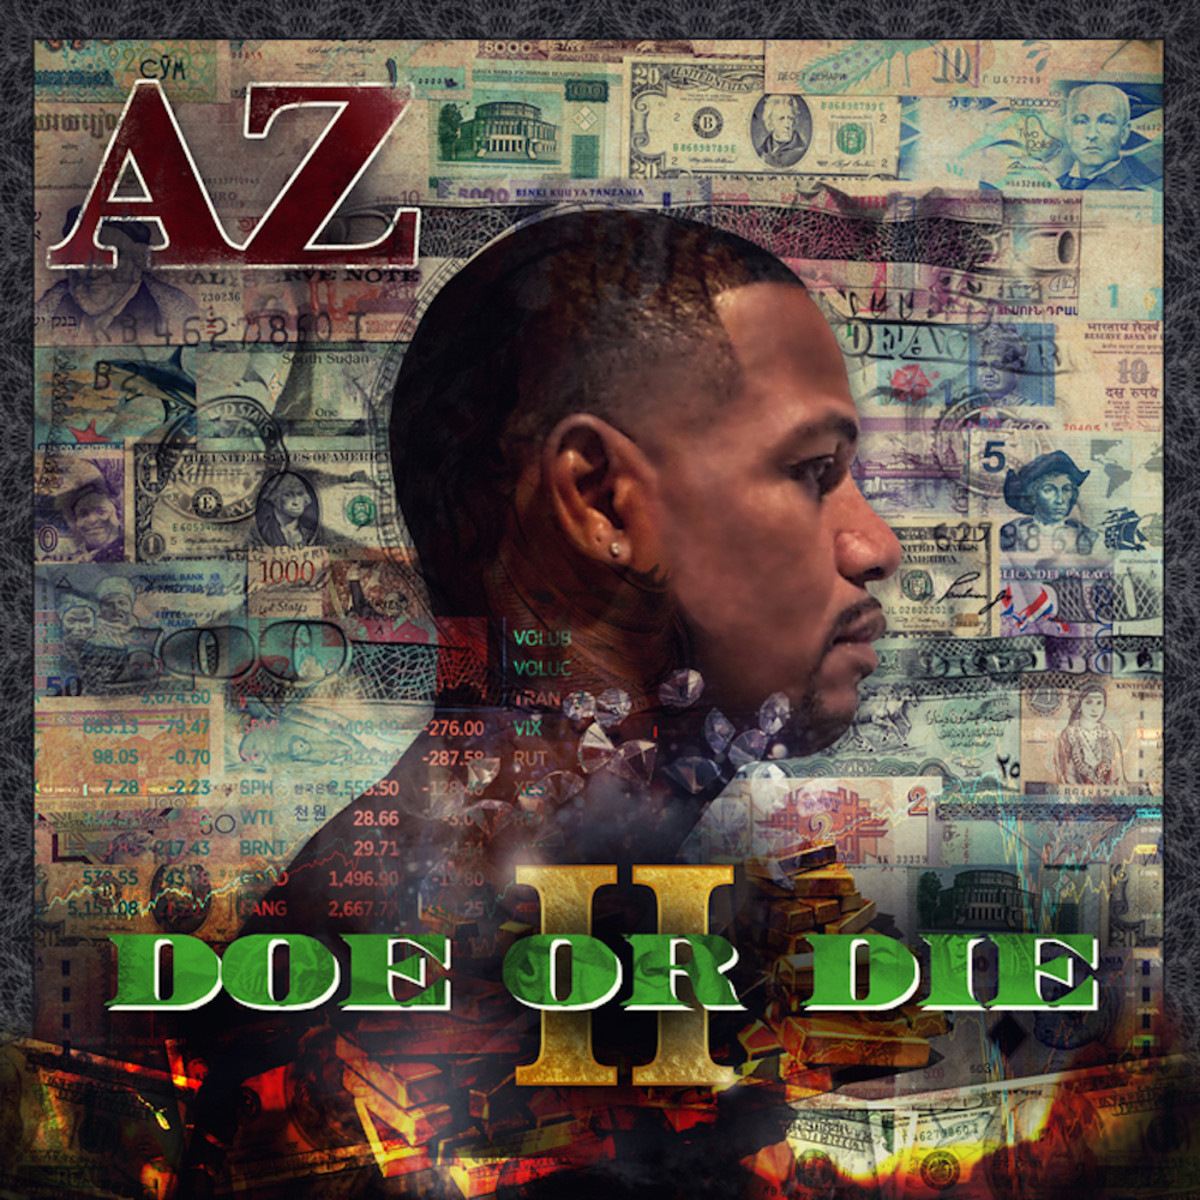 AZ Shares New Album 'Doe Or Die II' f/ Lil Wayne, Rick Ross, Conway the Machine, The Alchemist, and More - Complex